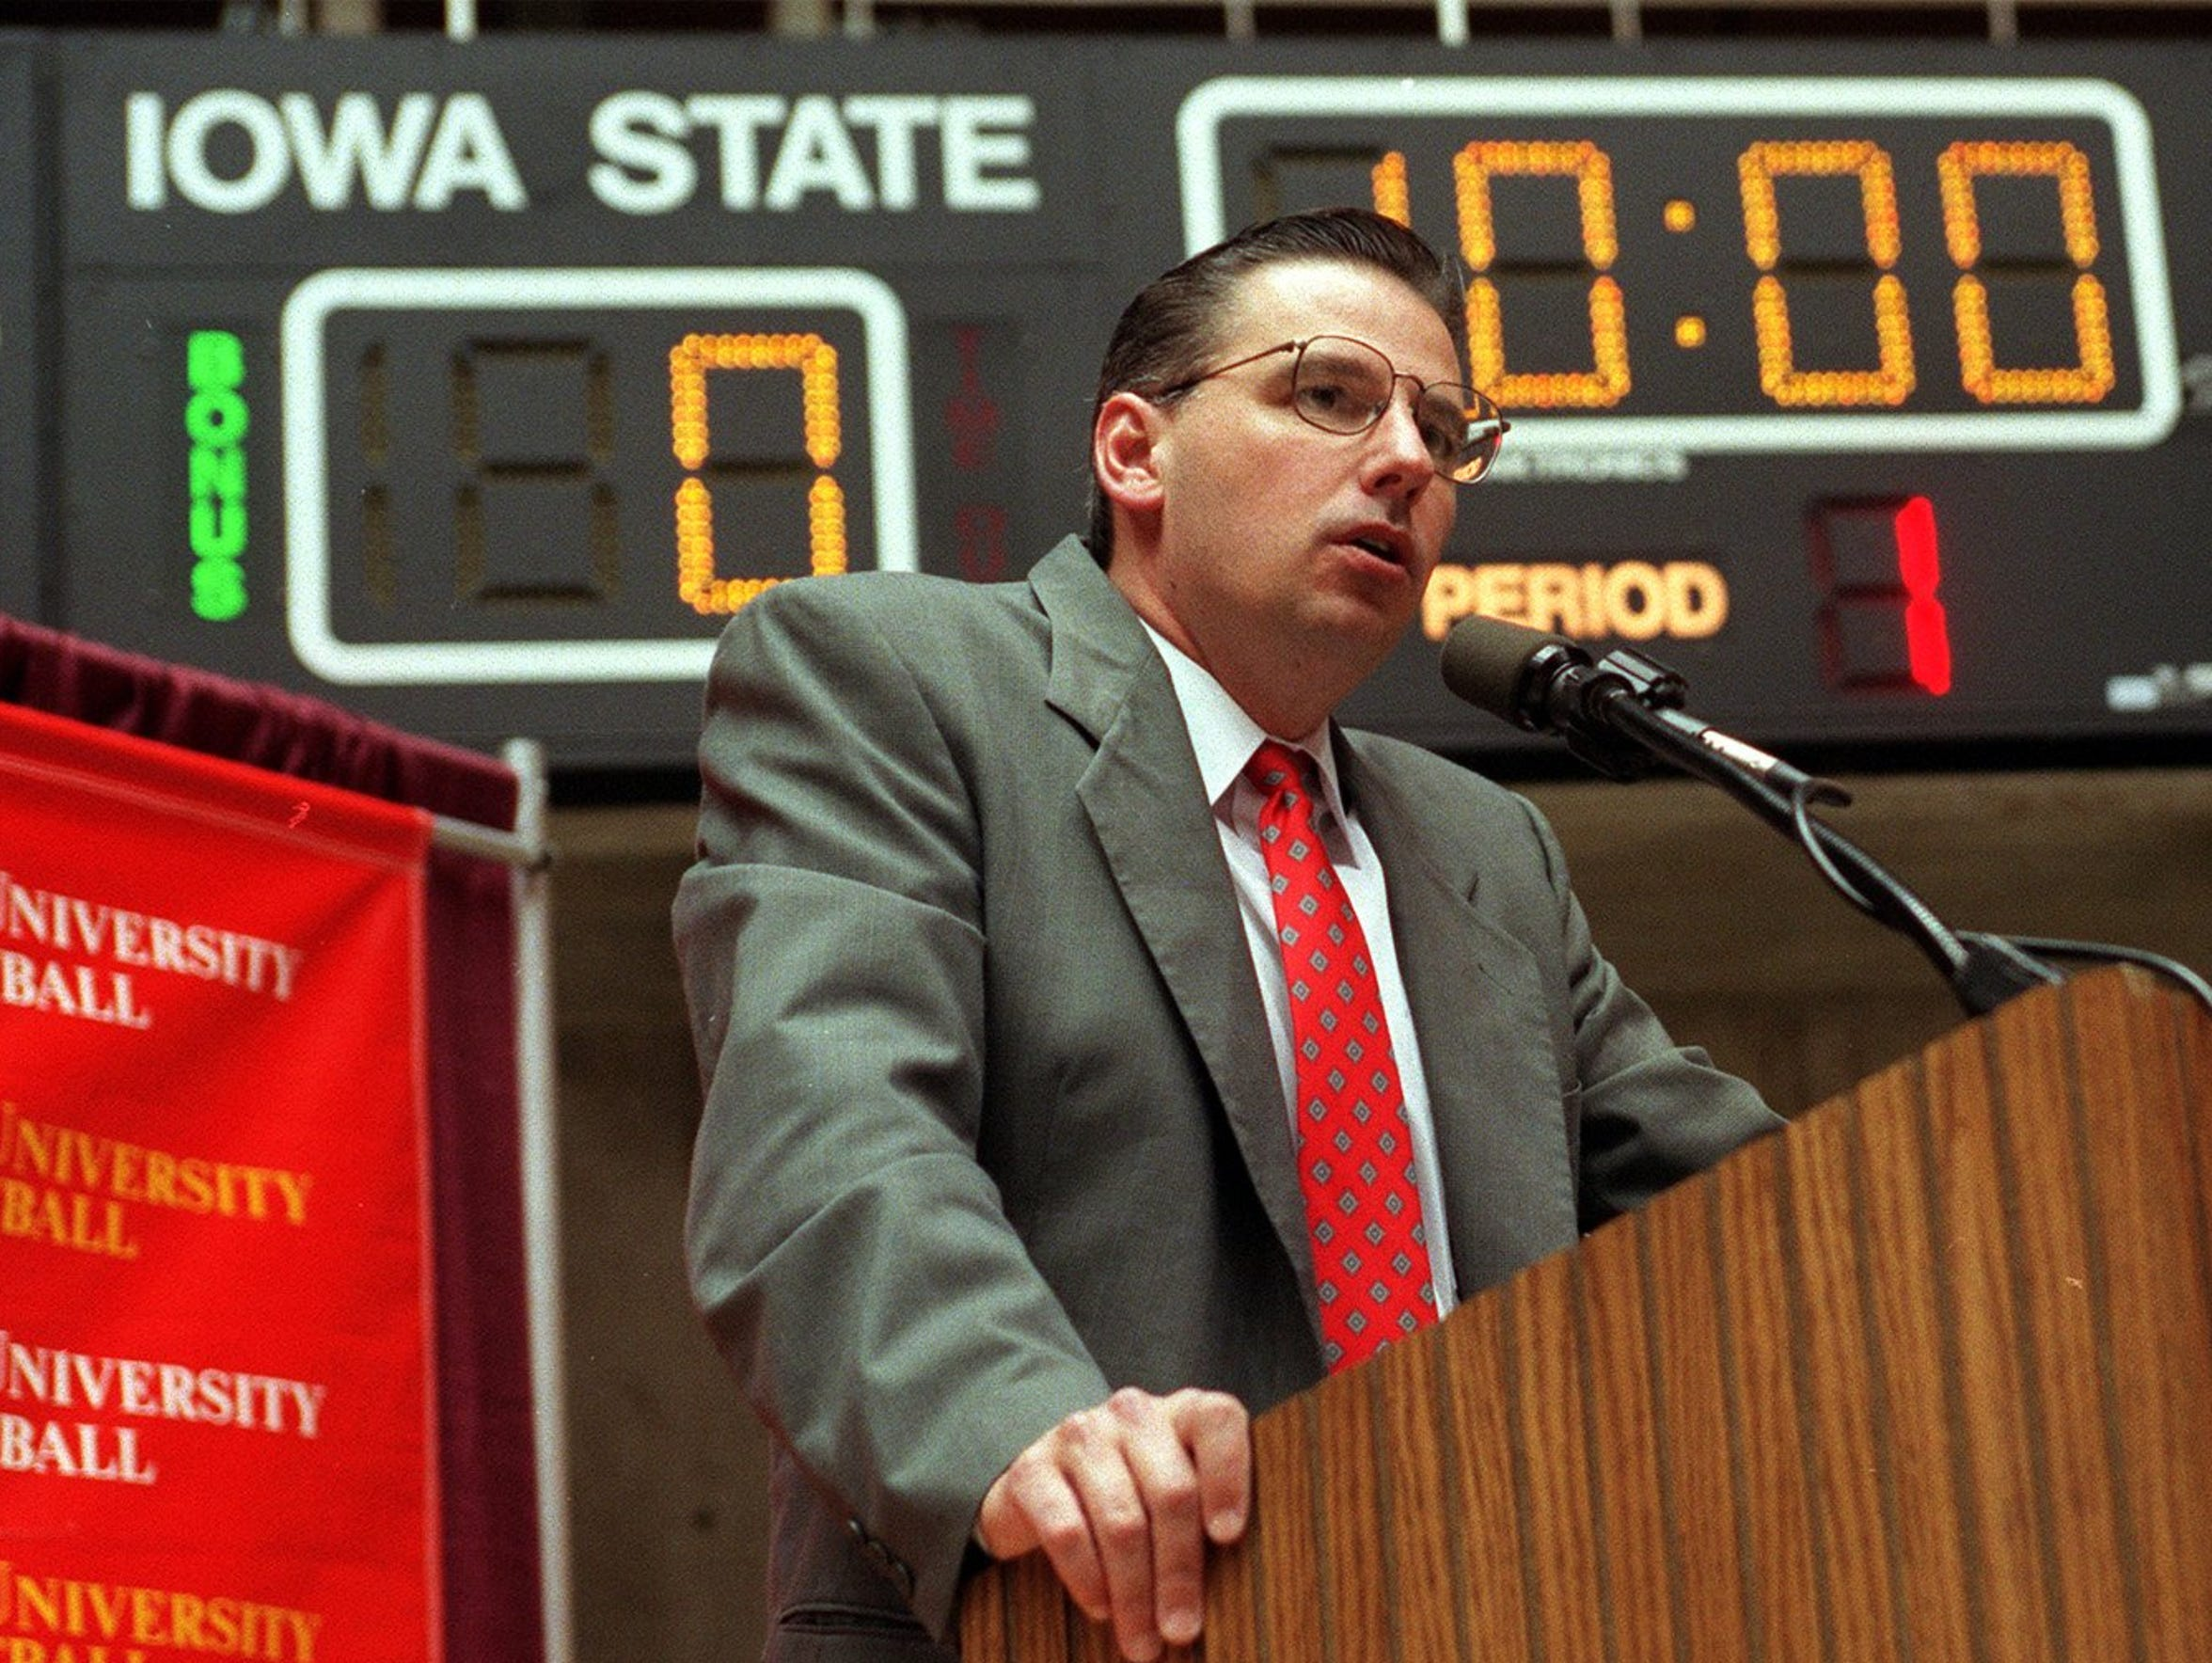 Larry Eustachy came to Iowa State in 1998 with a reputation